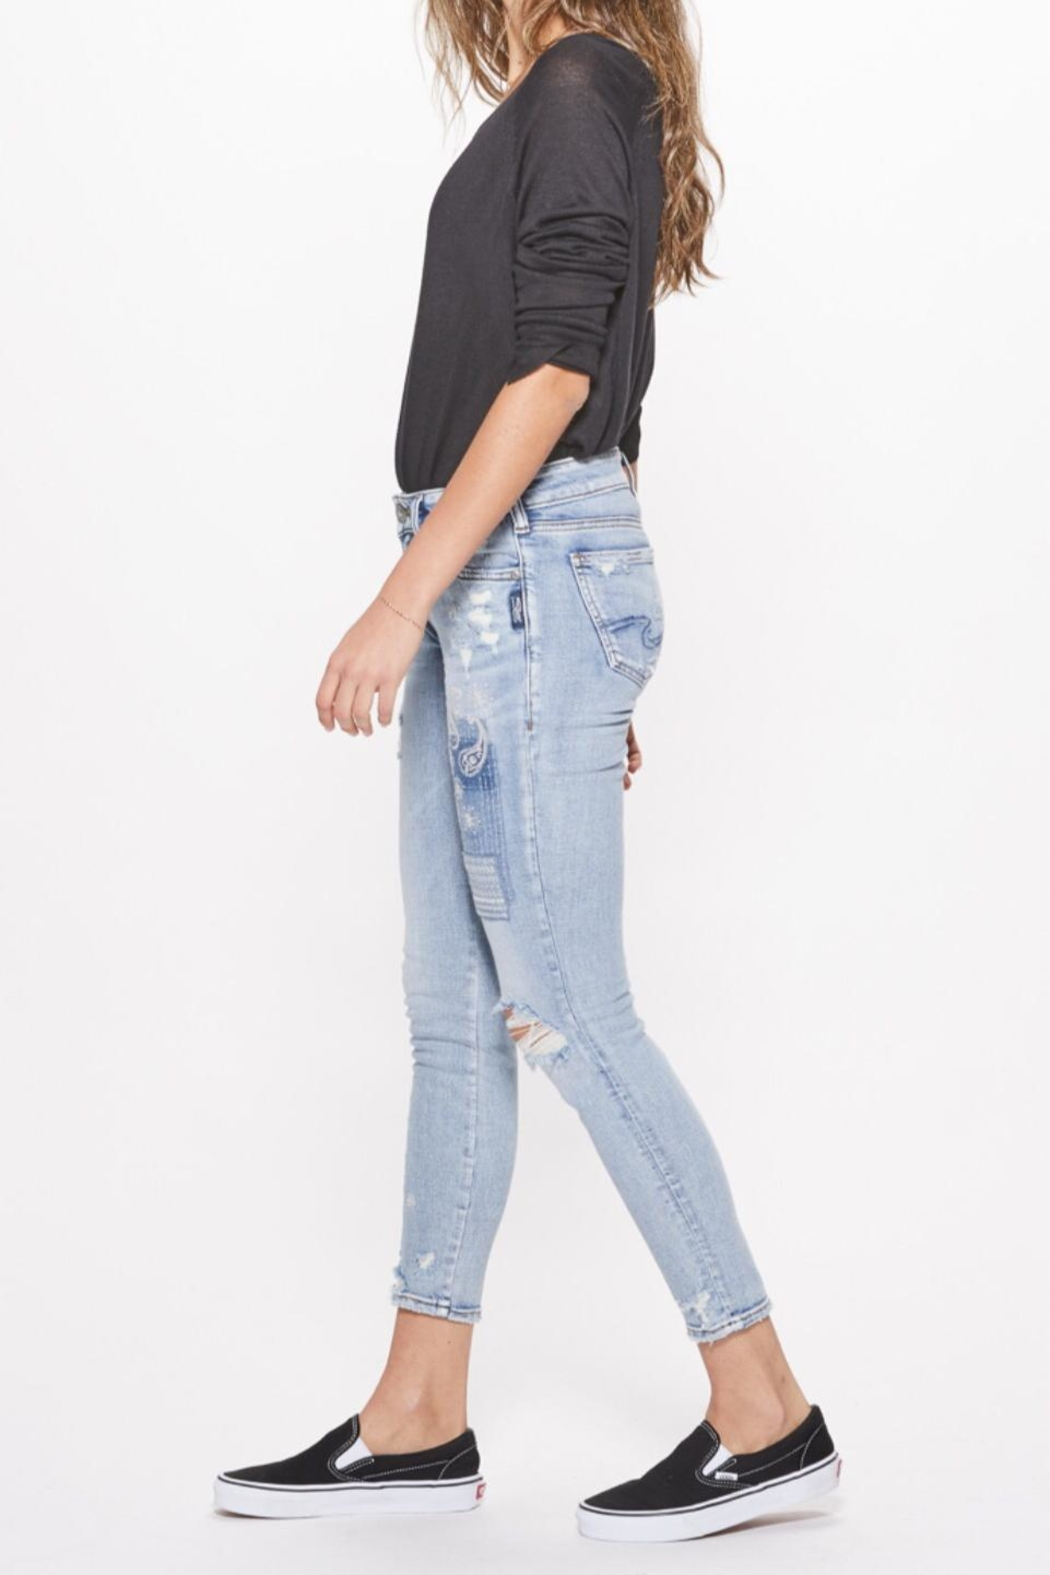 Silver Jeans Co. Distressed Skinny Jeans - Side Cropped Image